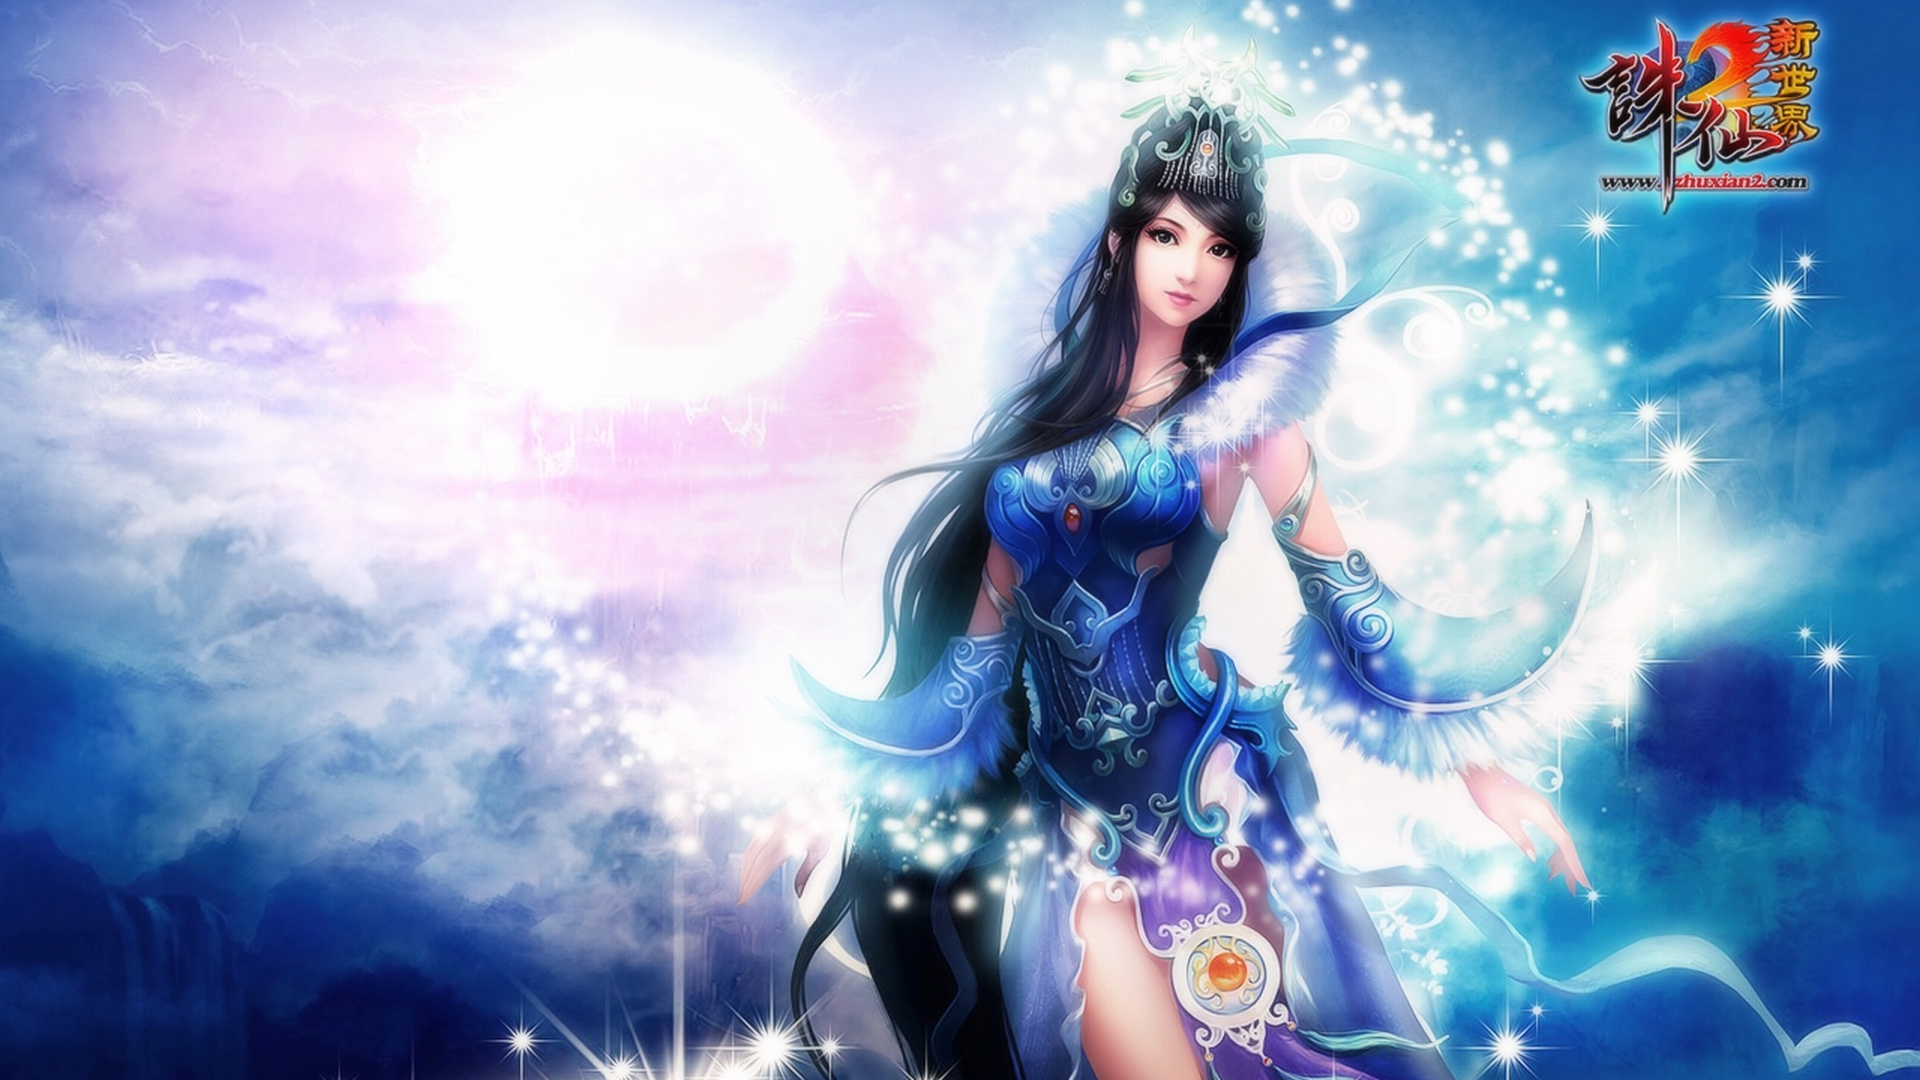 50 jade dynasty hd wallpapers backgrounds wallpaper abyss - Fantasy game wallpaper ...